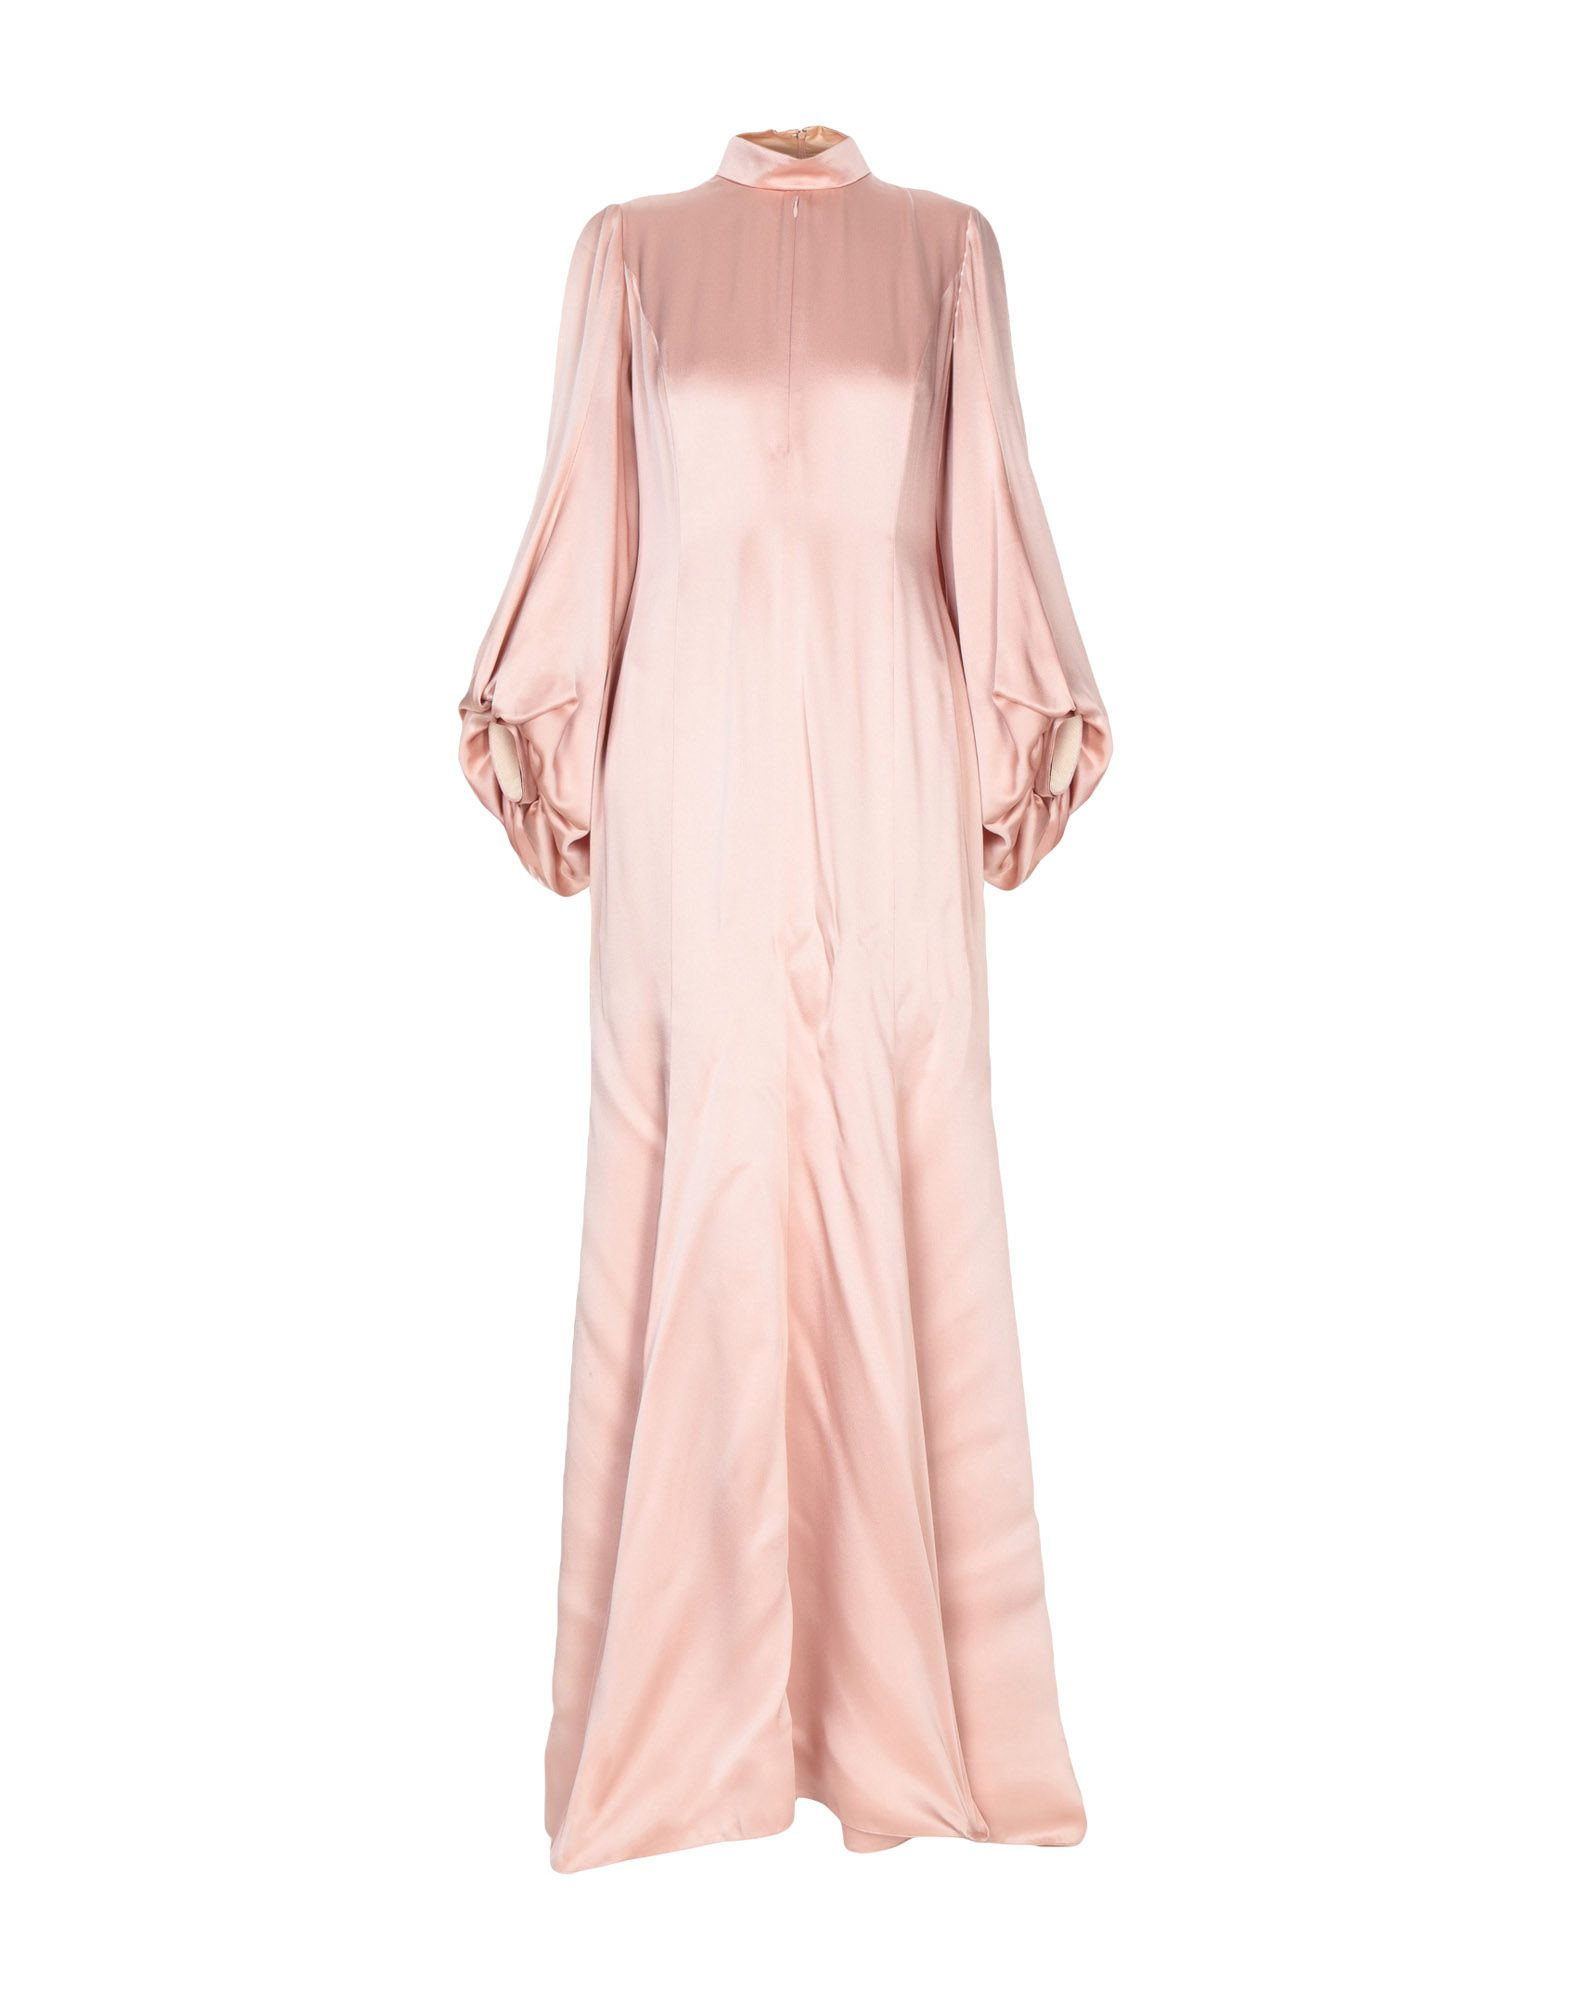 ANDREW GN Long Dress in Pale Pink